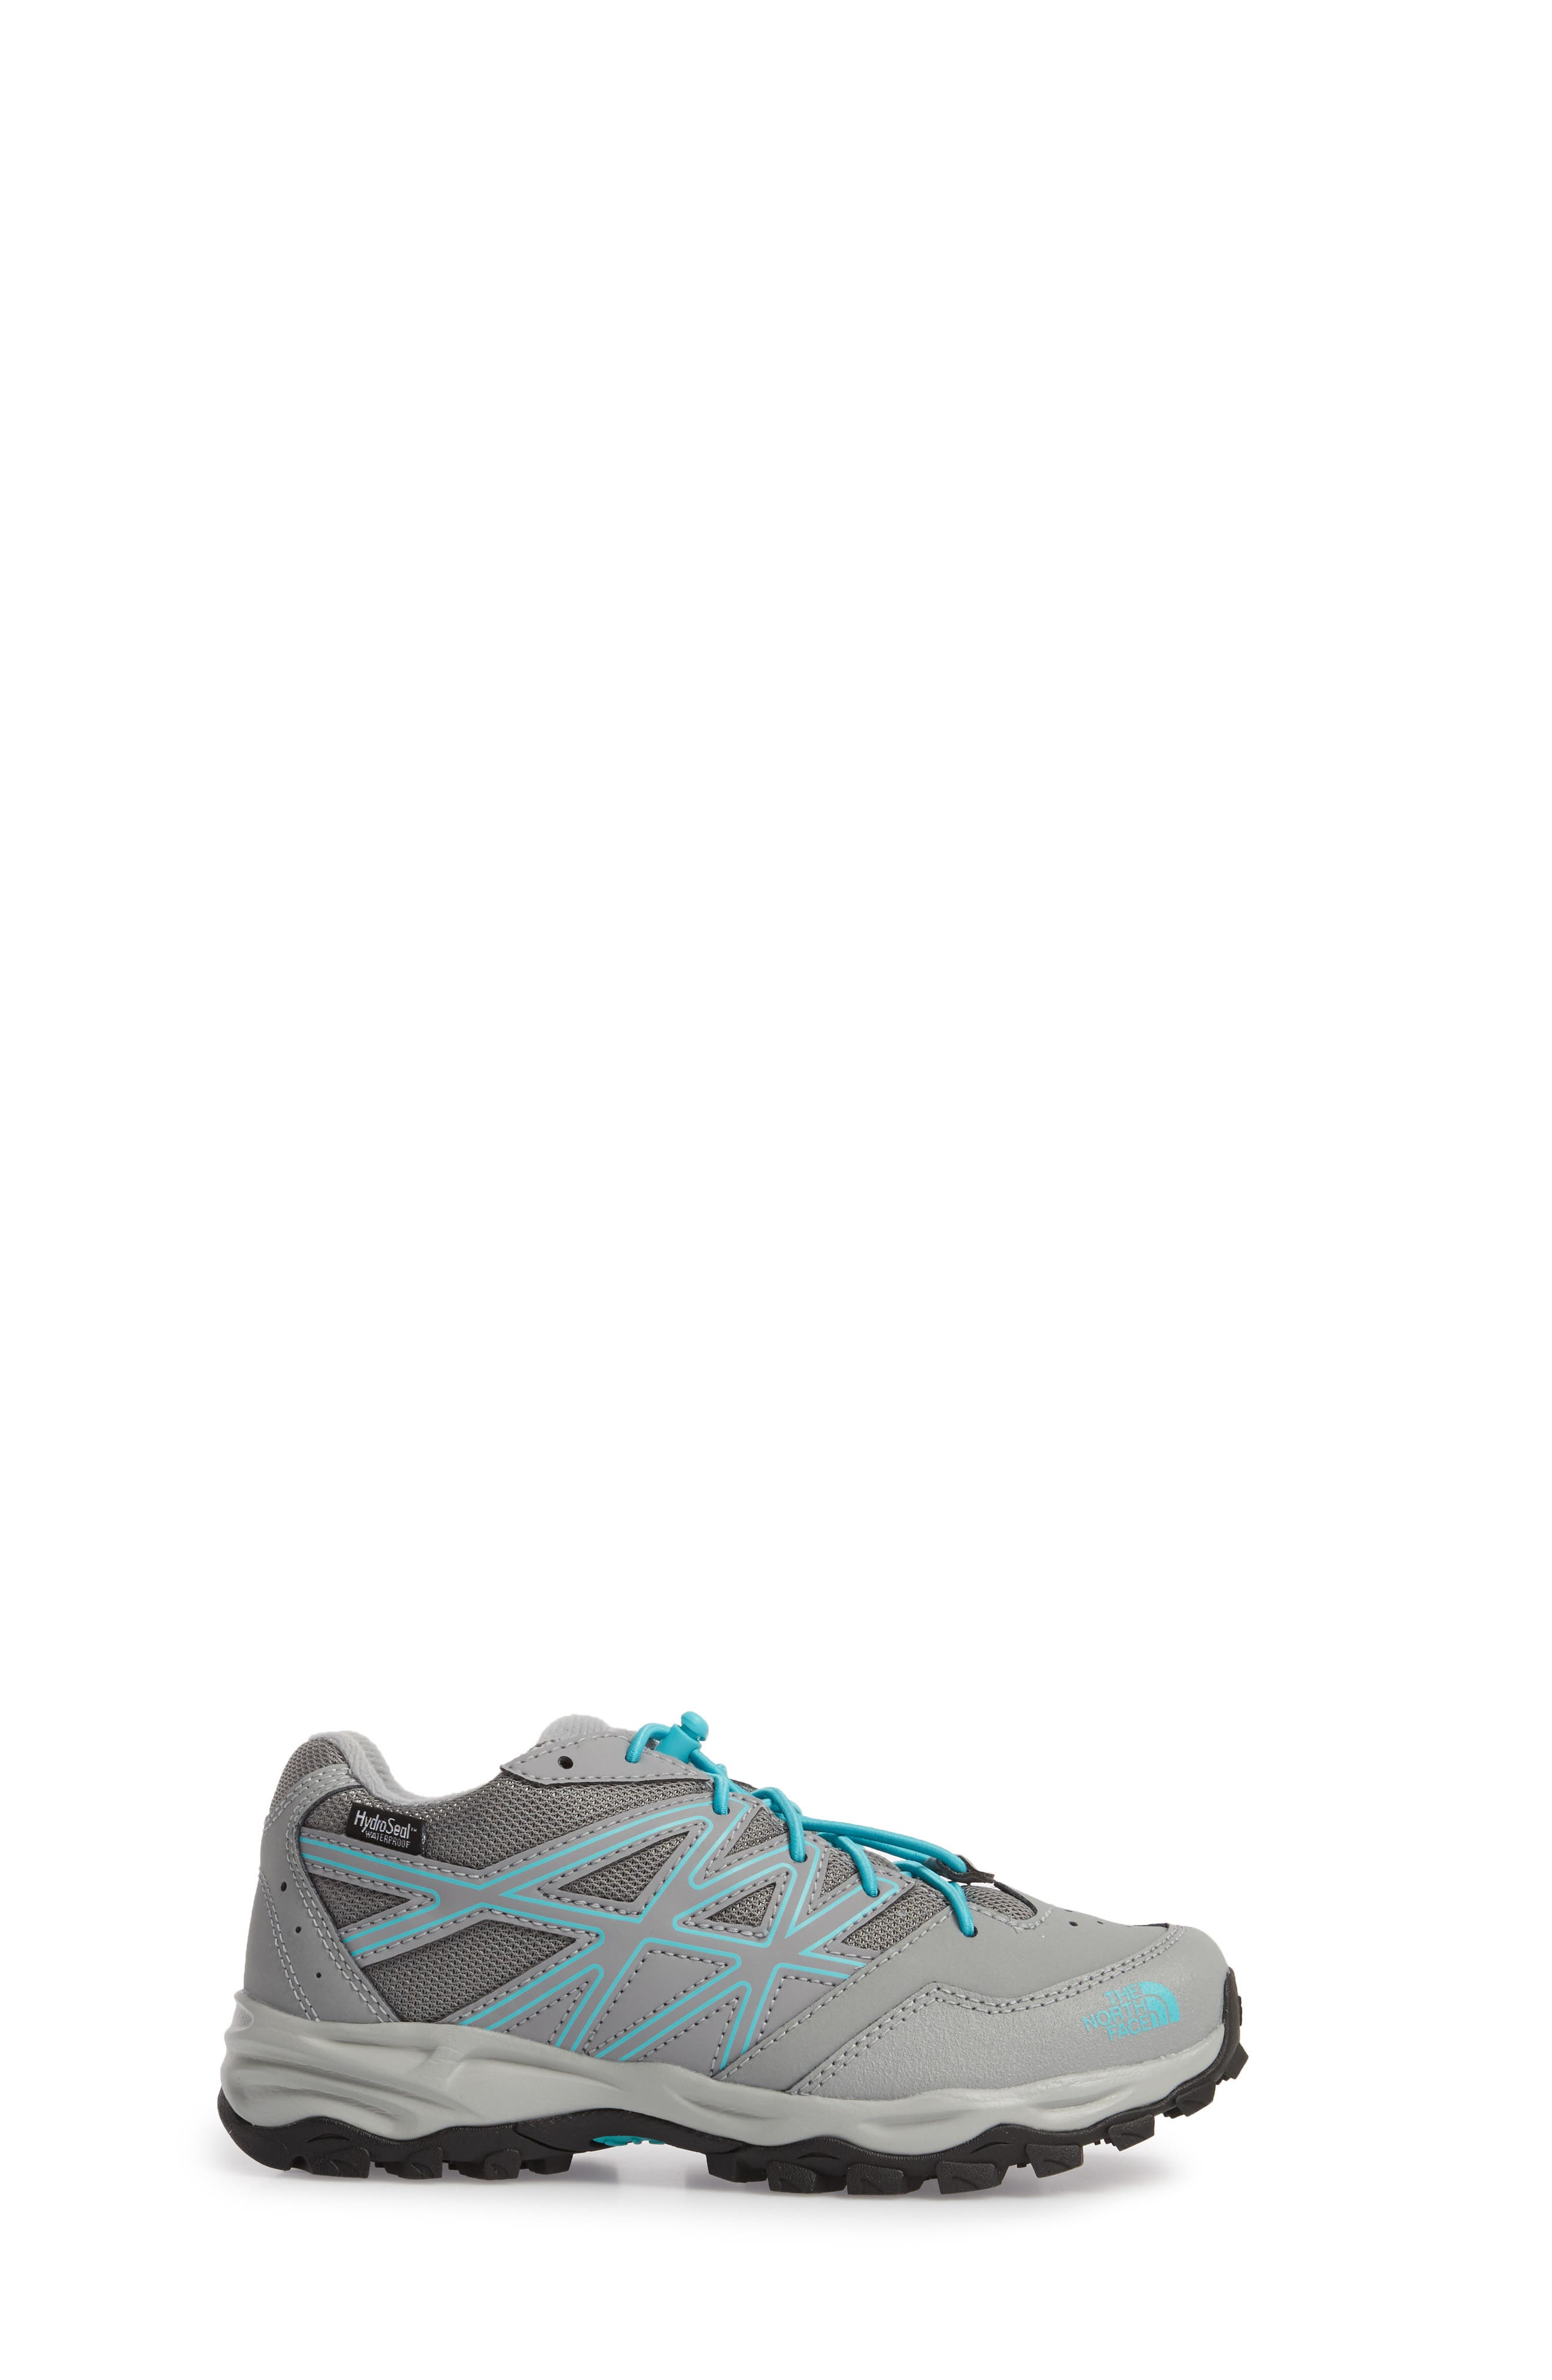 Hedgehog Hiker Boot,                             Alternate thumbnail 3, color,                             Griffin Grey/ Blue Curacao